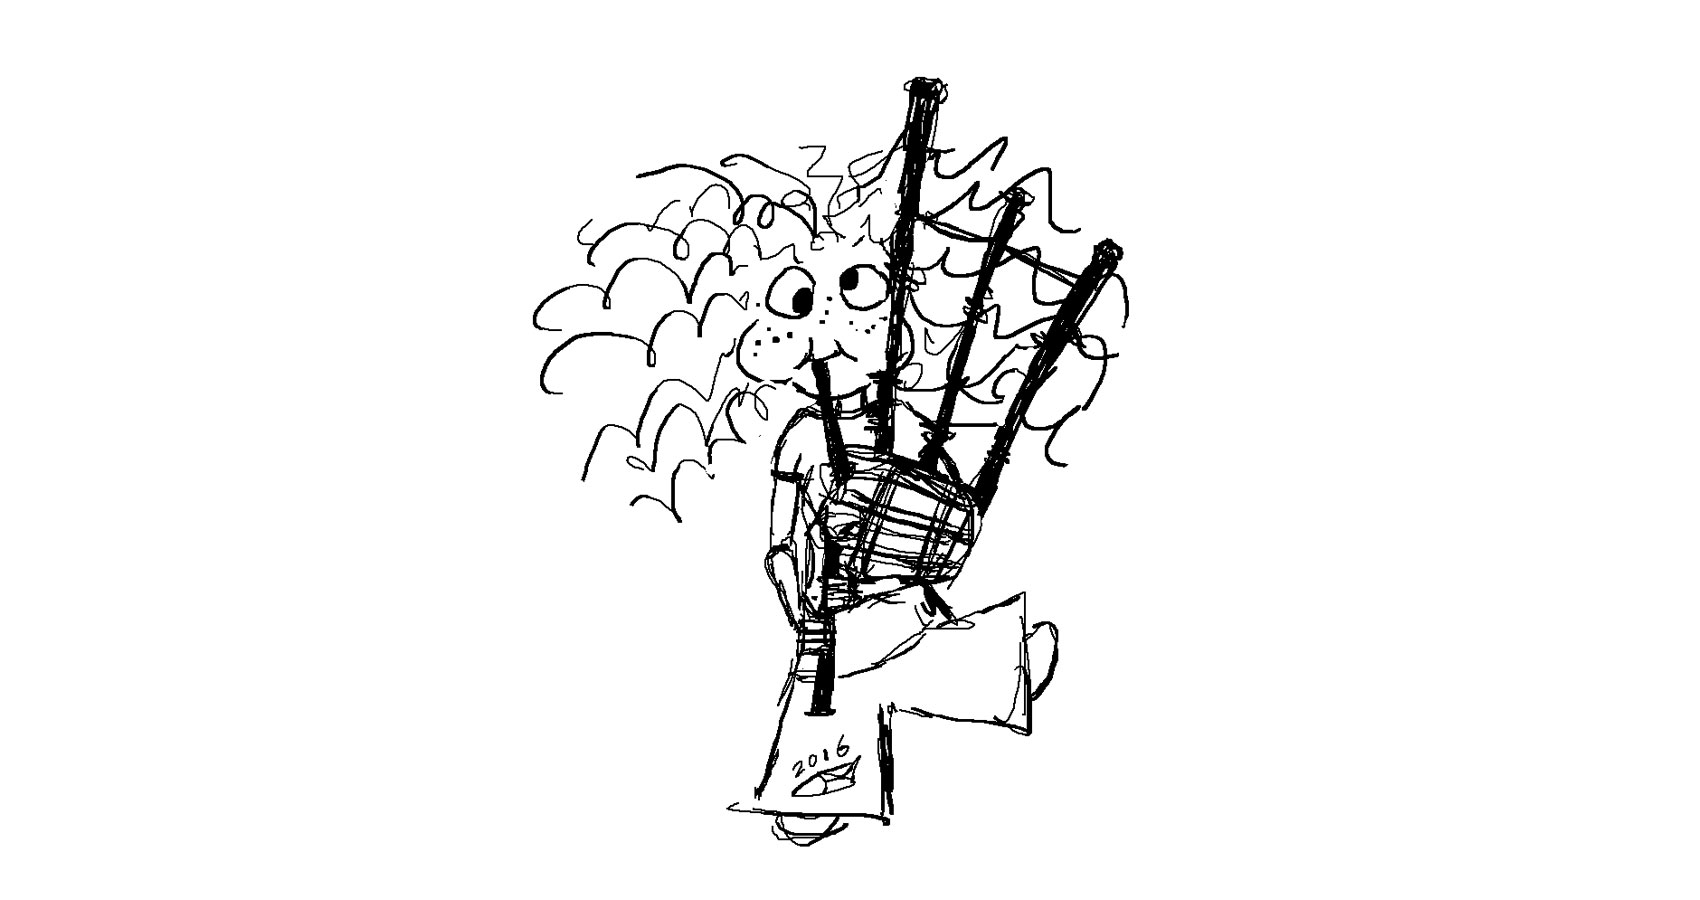 Bagpipe Goofball by Robyn MacKinnon at Spillwords.com